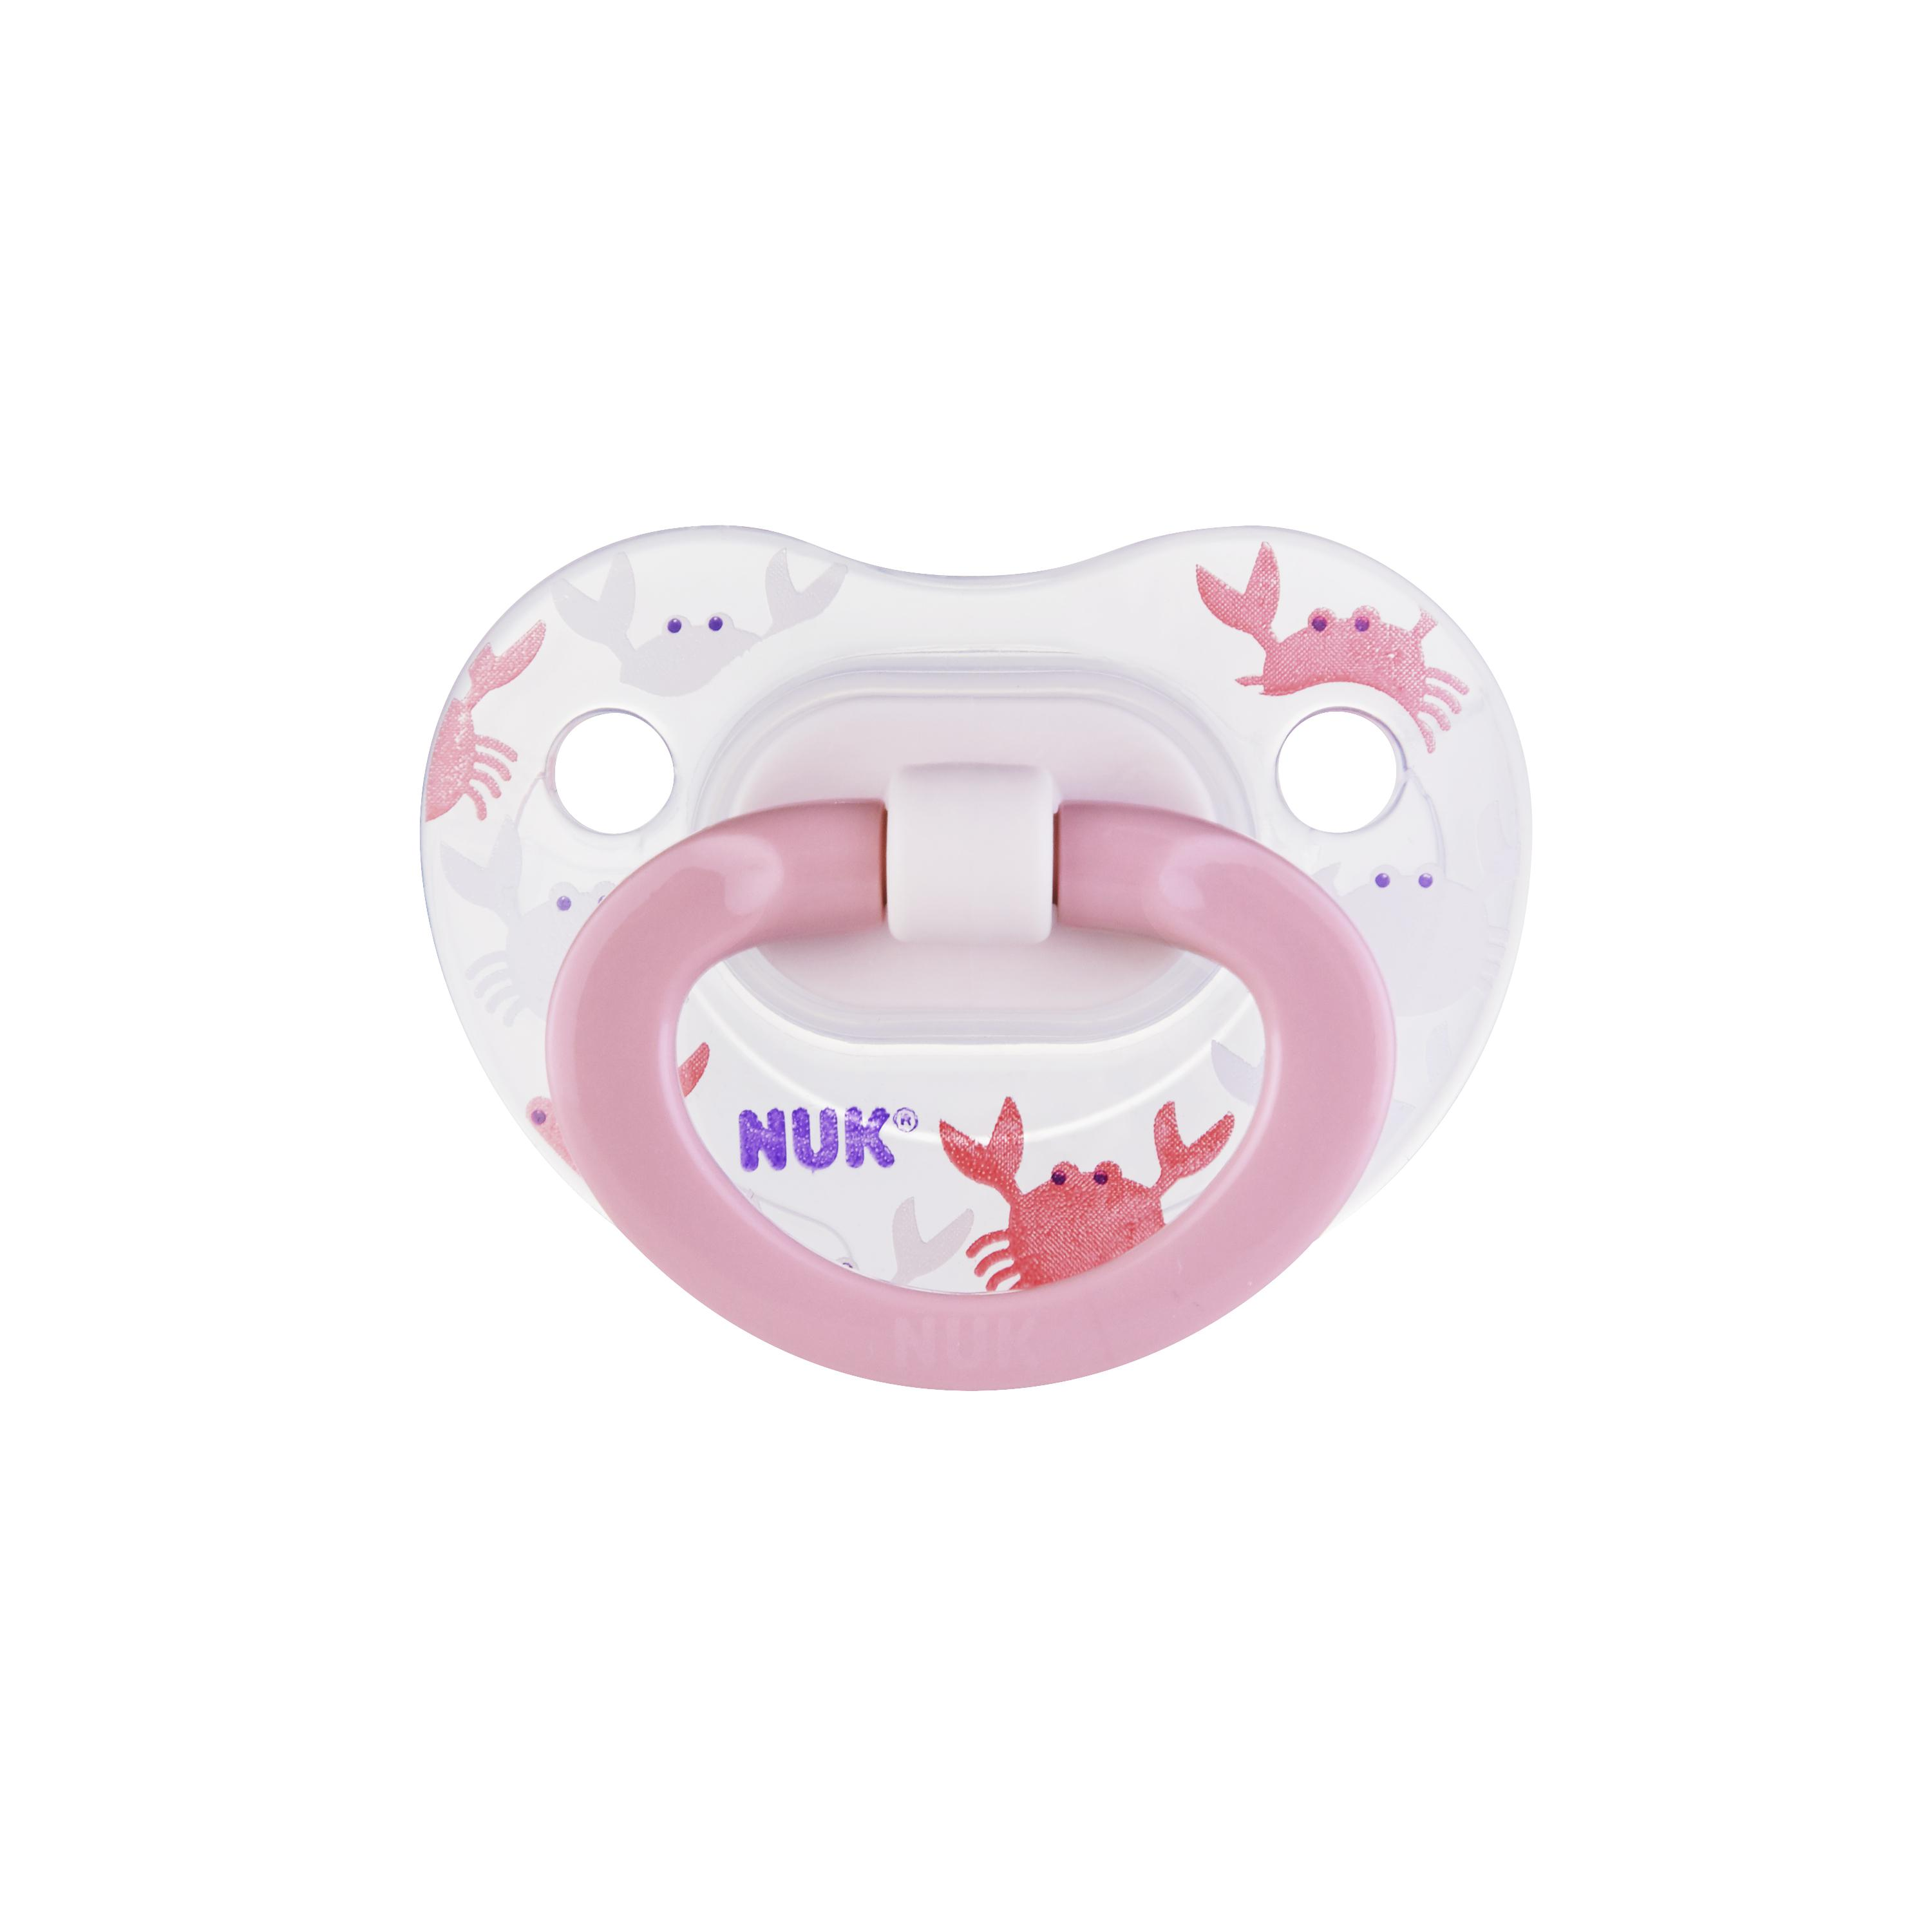 NUK® Orthodontic Pacifiers, 18-36 Months, 2-Pack Product Image 1 of 6